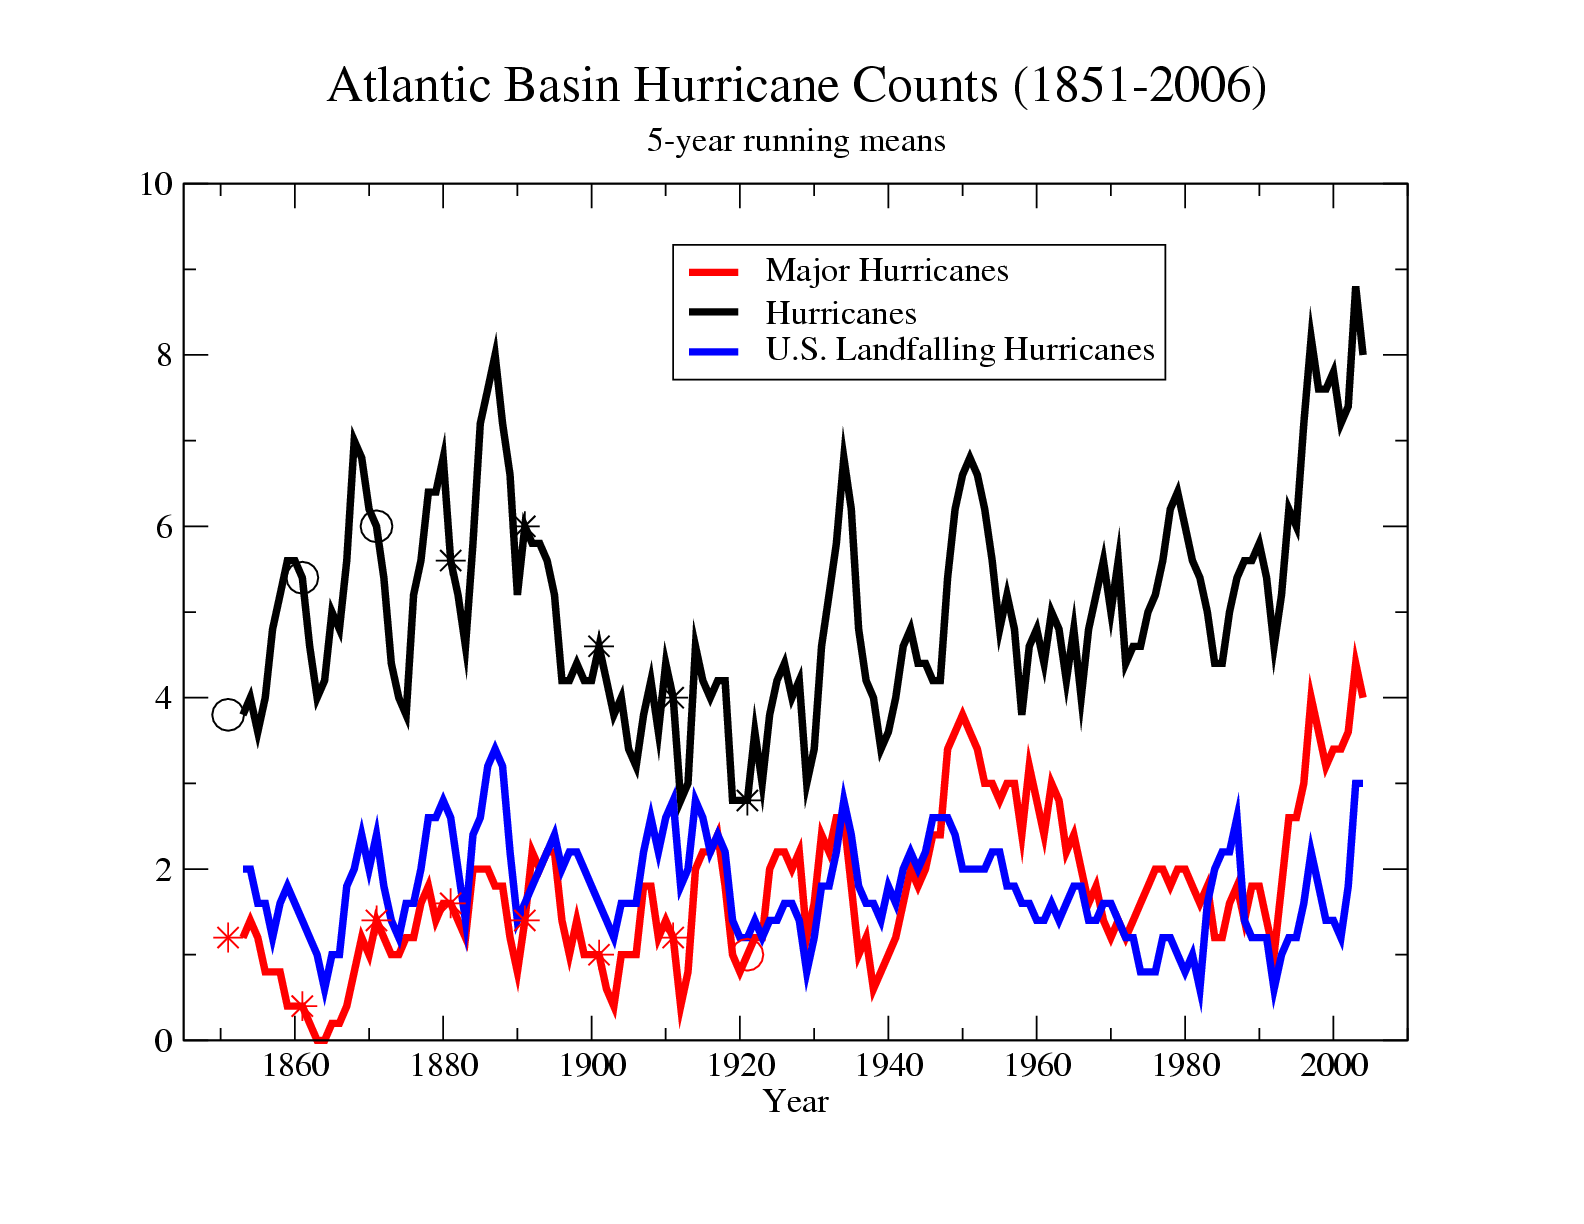 Atlantic Basin Hurricane Counts, courtesy NOAA